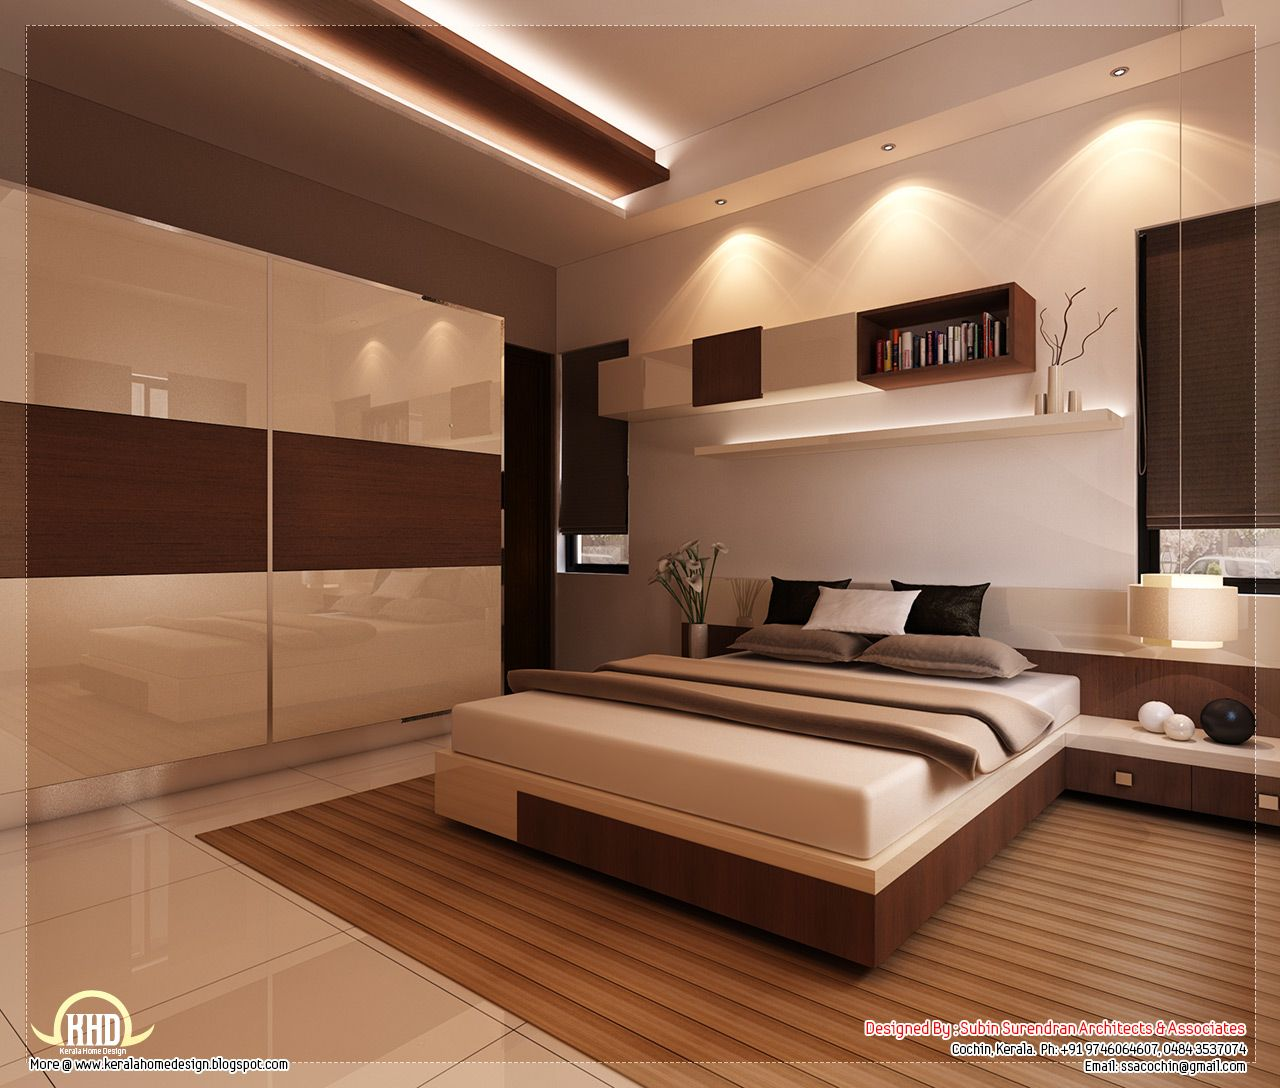 Home Interior Design: Wardrobe Design Bedroom, Indian Bedroom Design